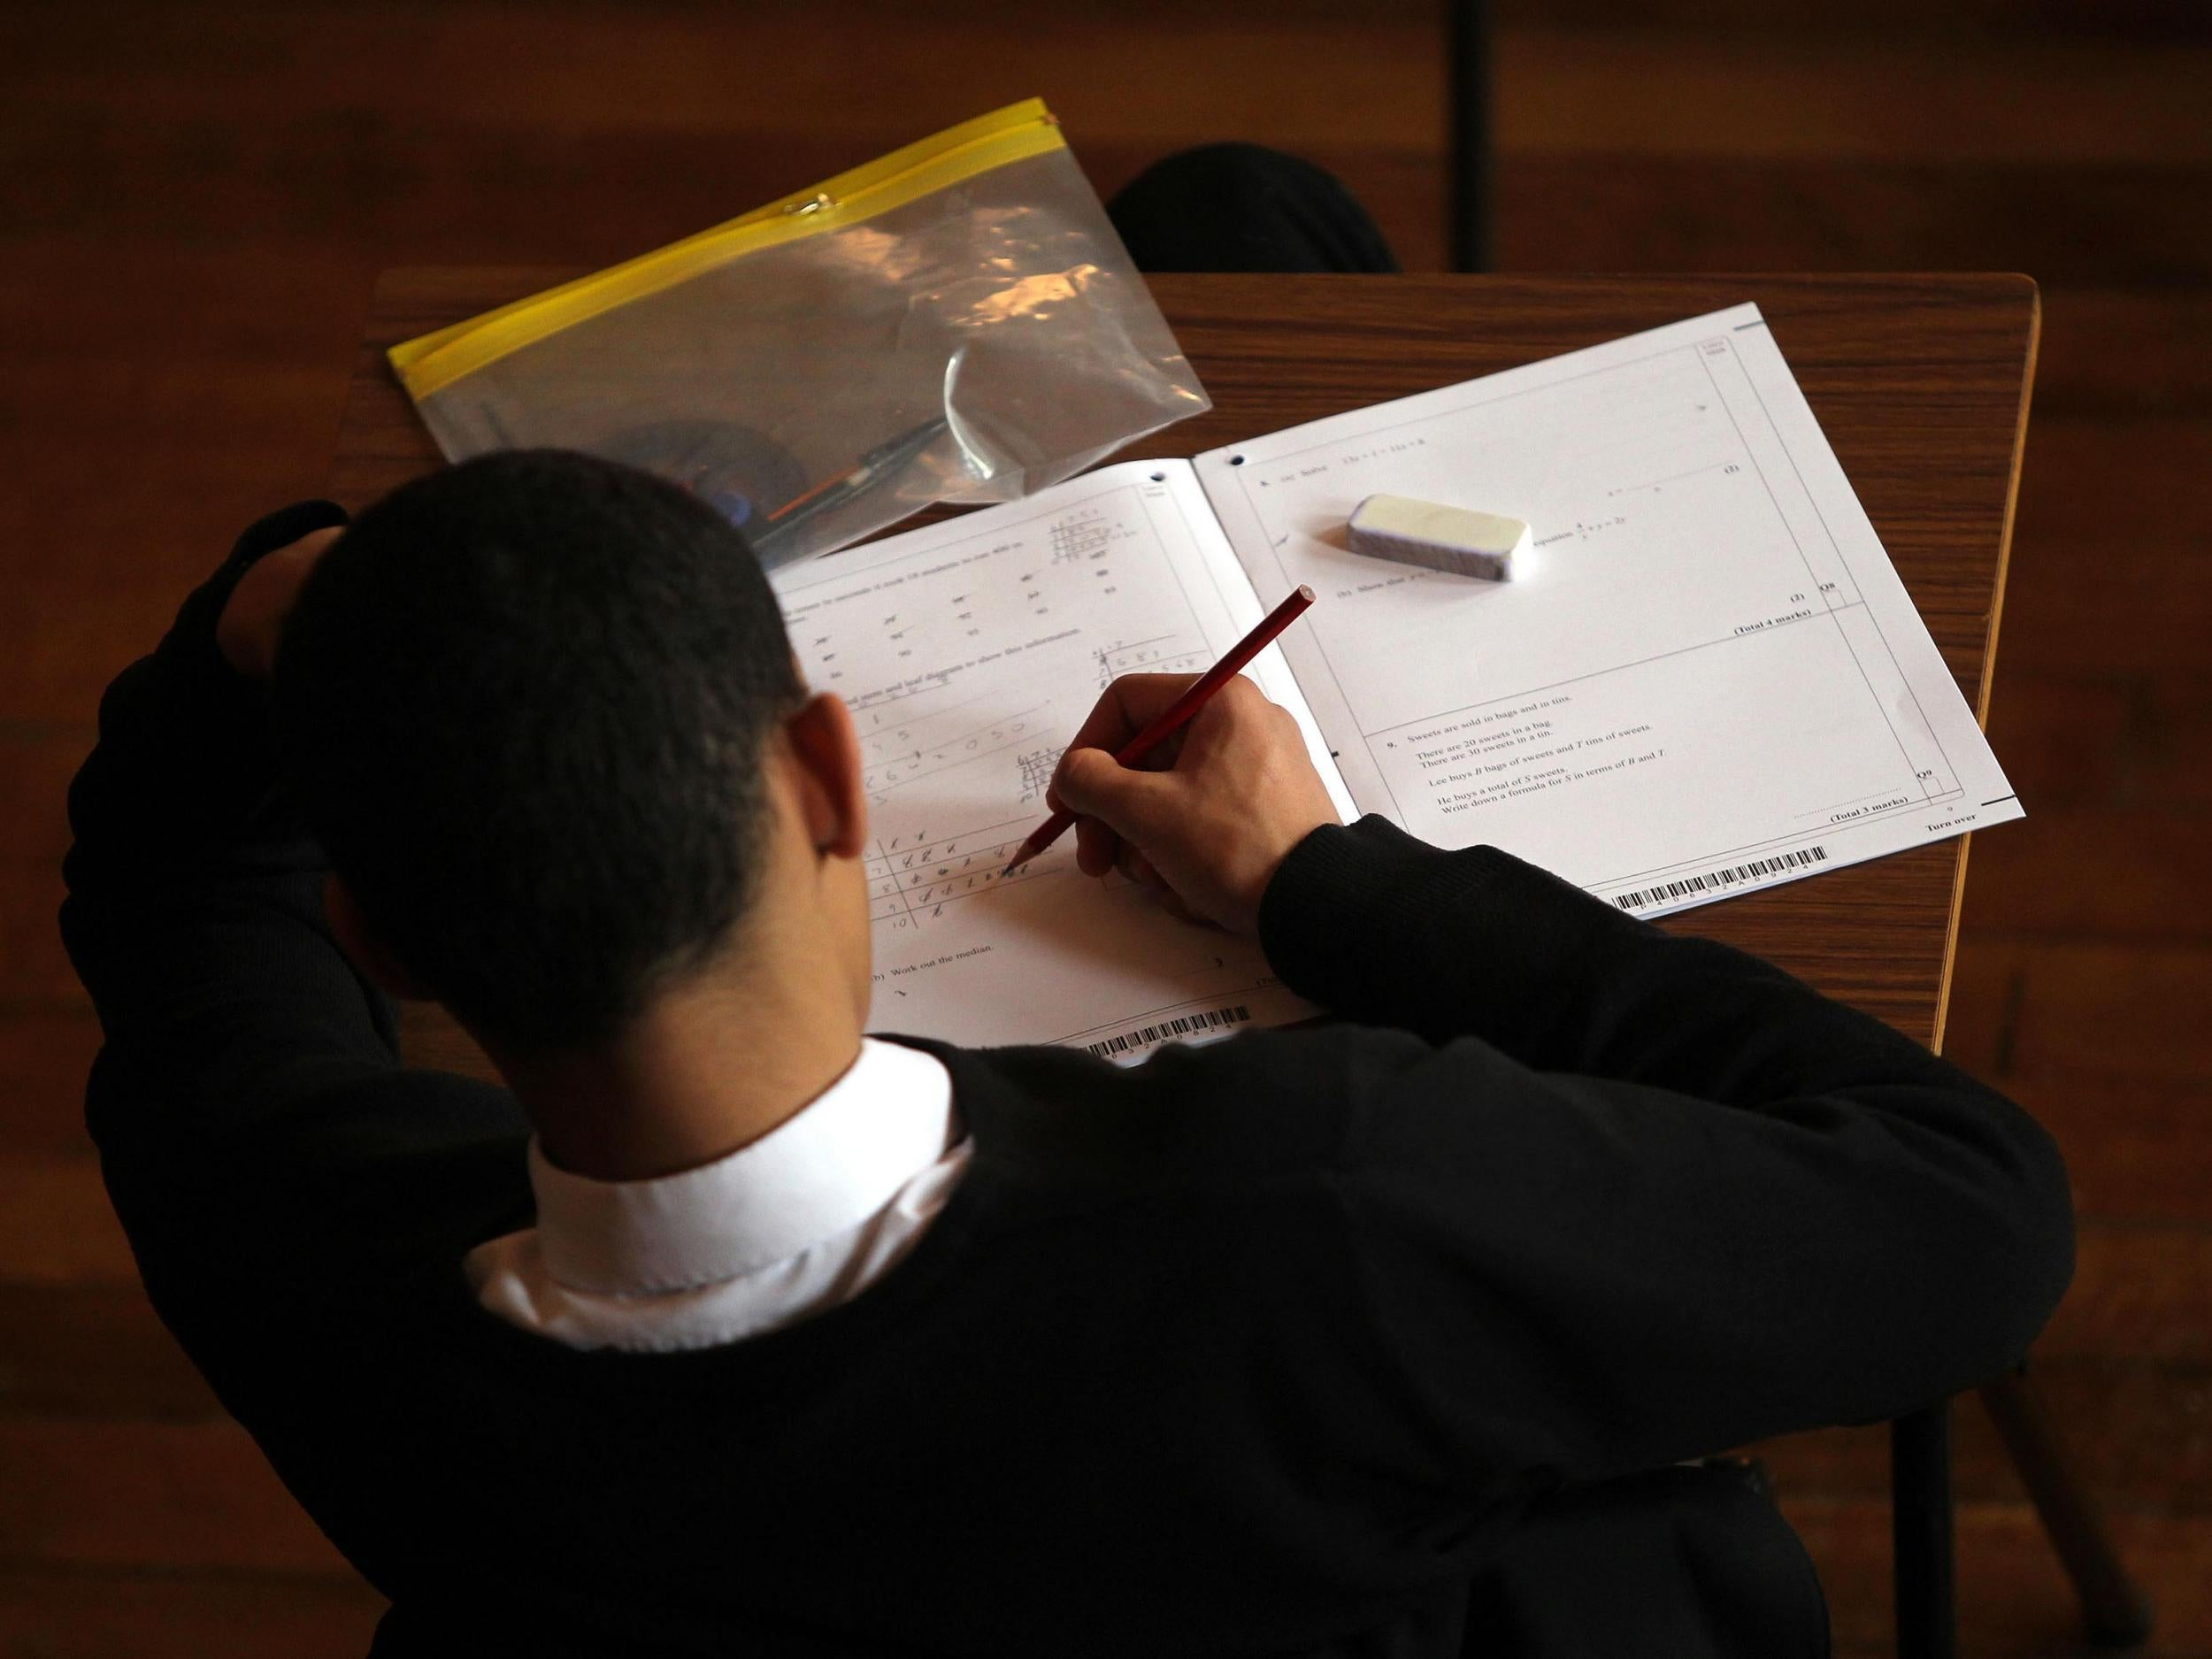 Opinion: Black students will suffer most from A-level cancellations – they routinely outperform their predicted grades